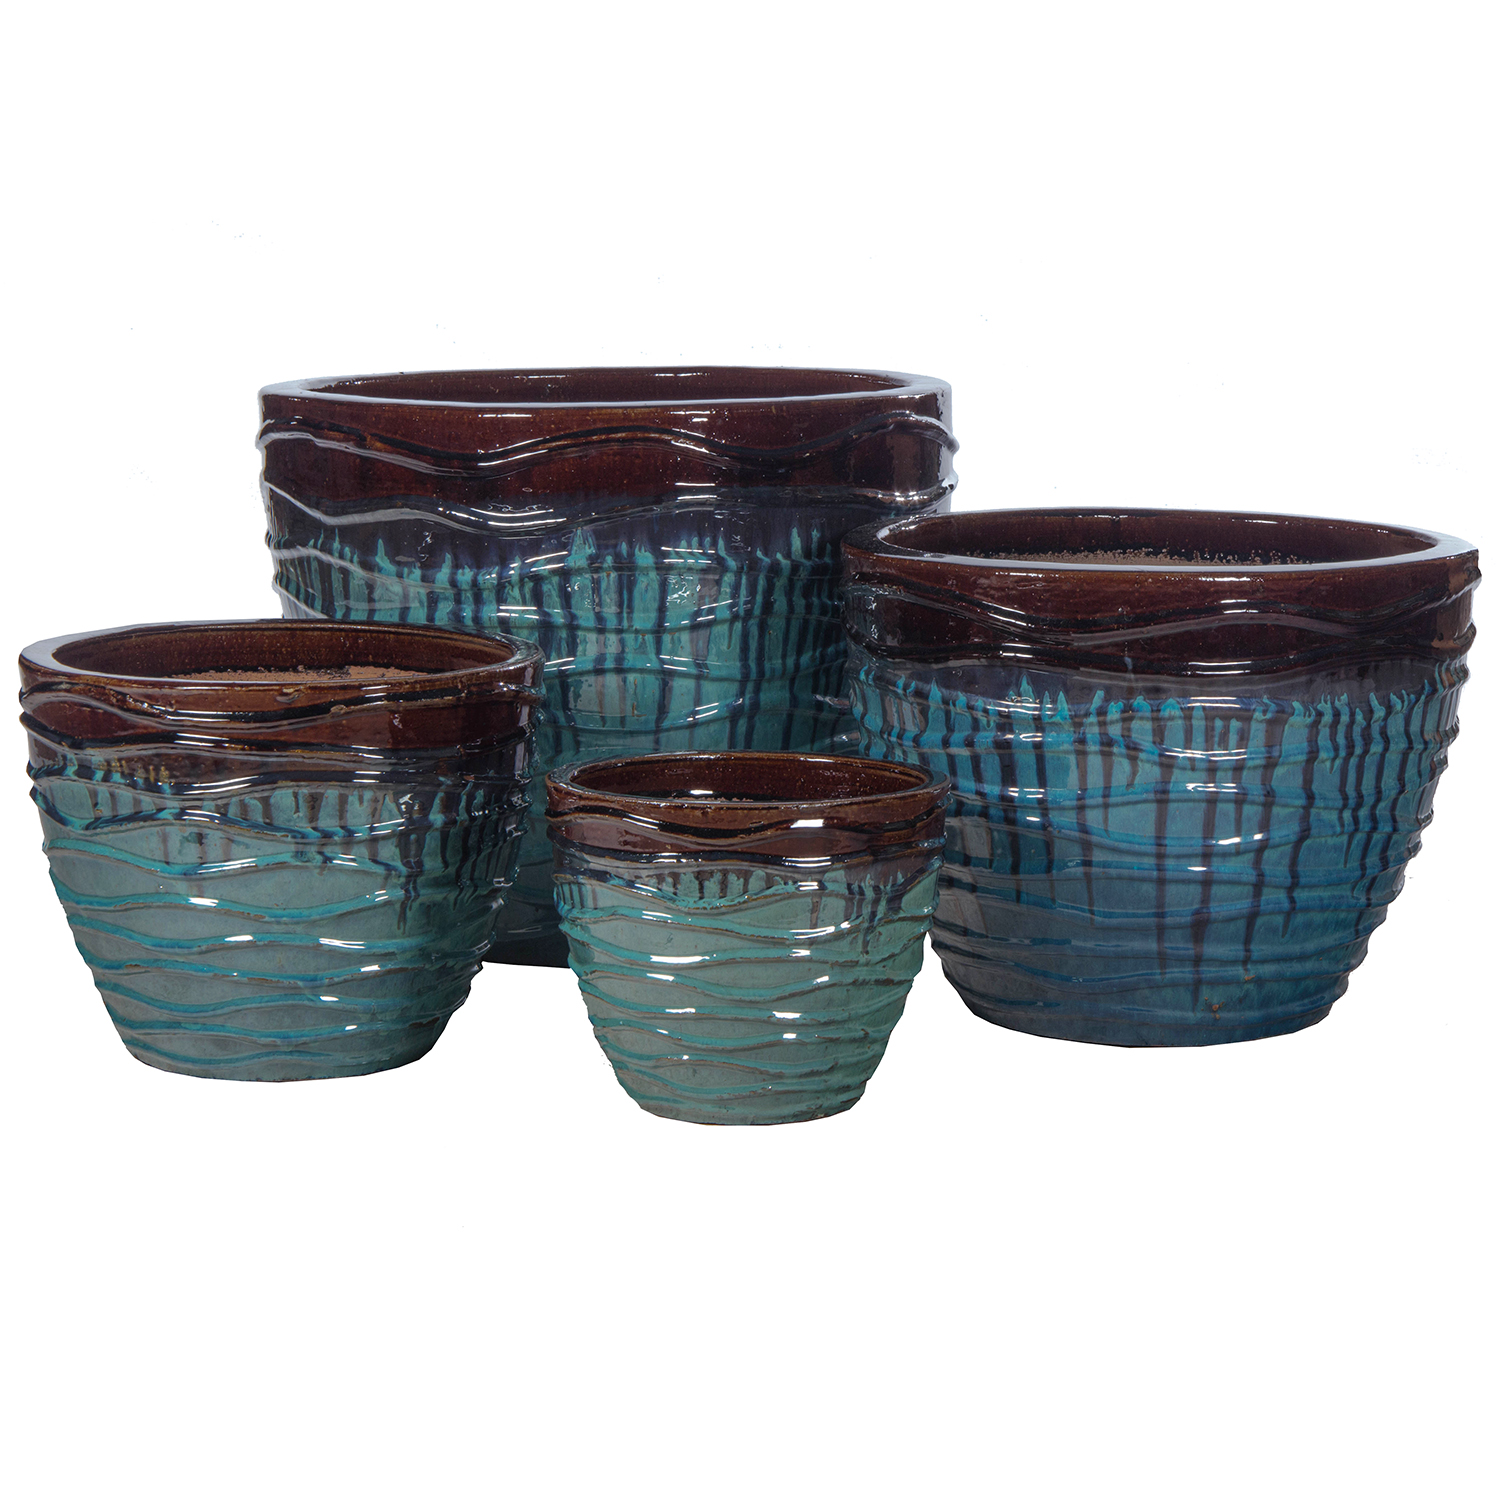 SET OF 4 CERAMIC PLANTERS